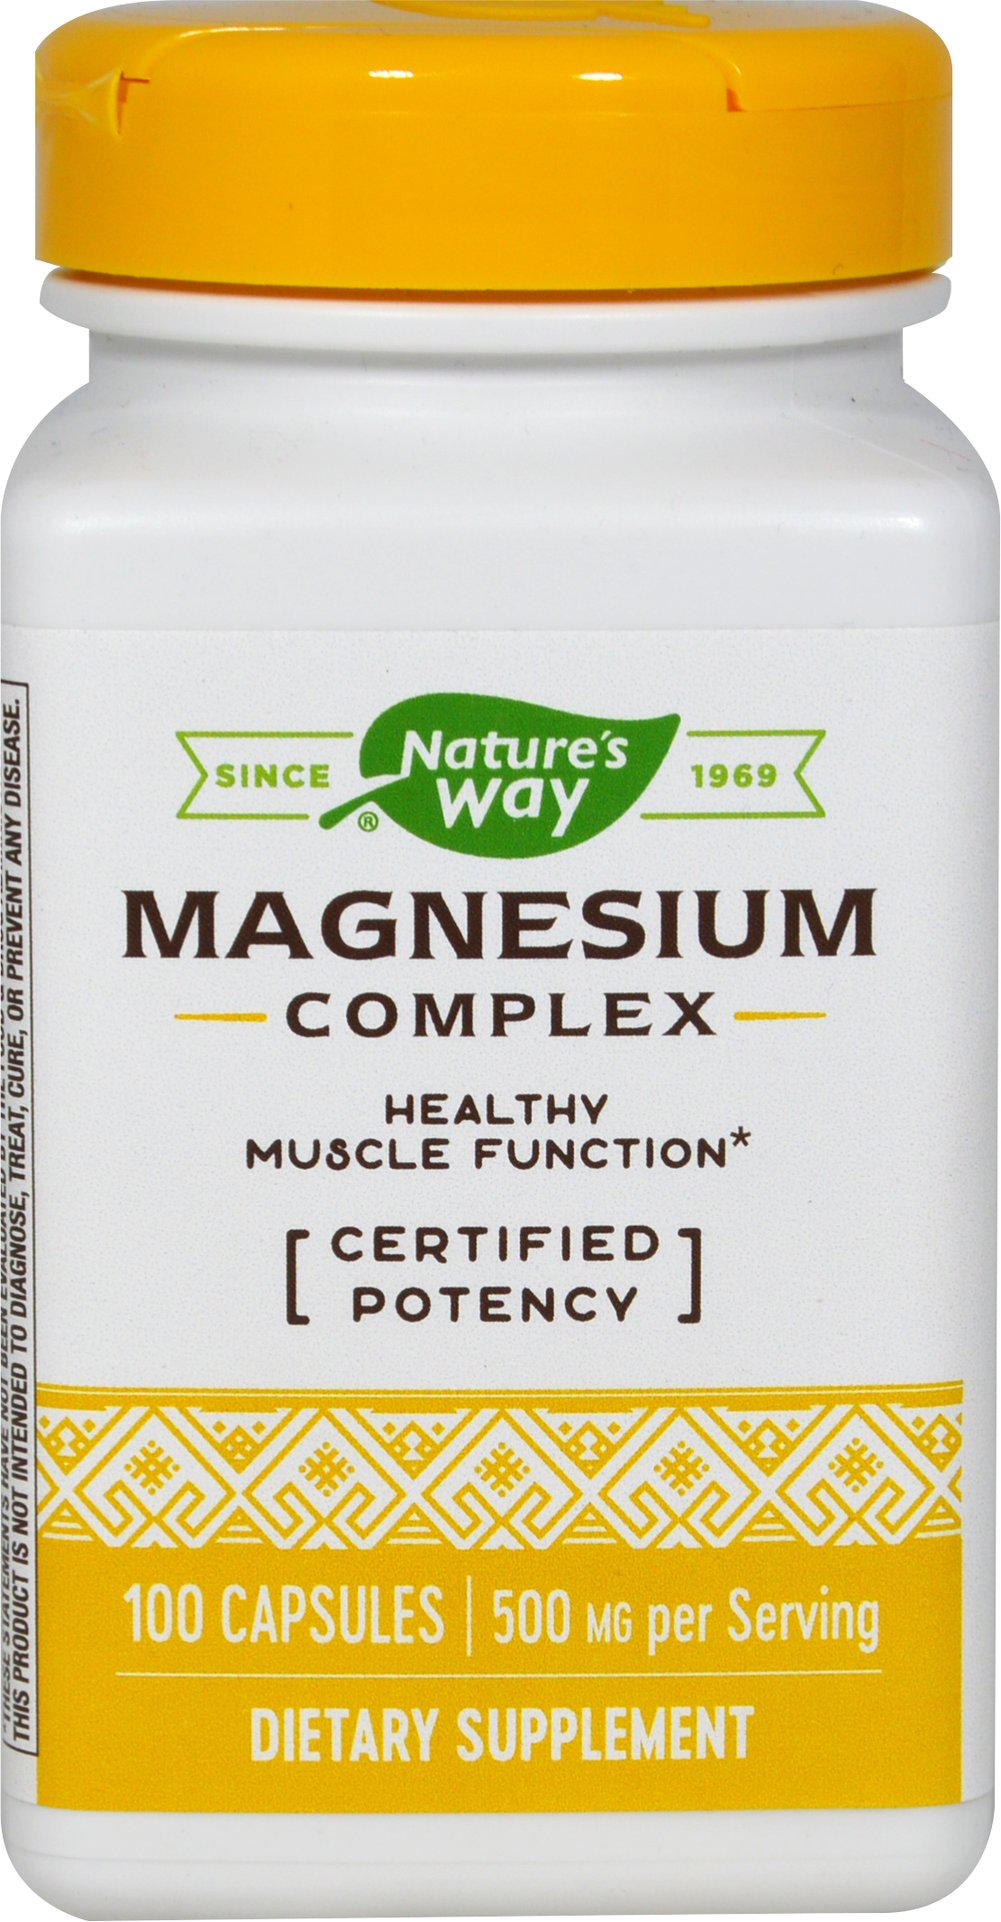 Magnesium Complex <p><strong>From the Manufacturer's Label:</strong></p><p>Magnesium Complex is manufactured by Nature's Way.</p> 100 Capsules 250 mg $4.99